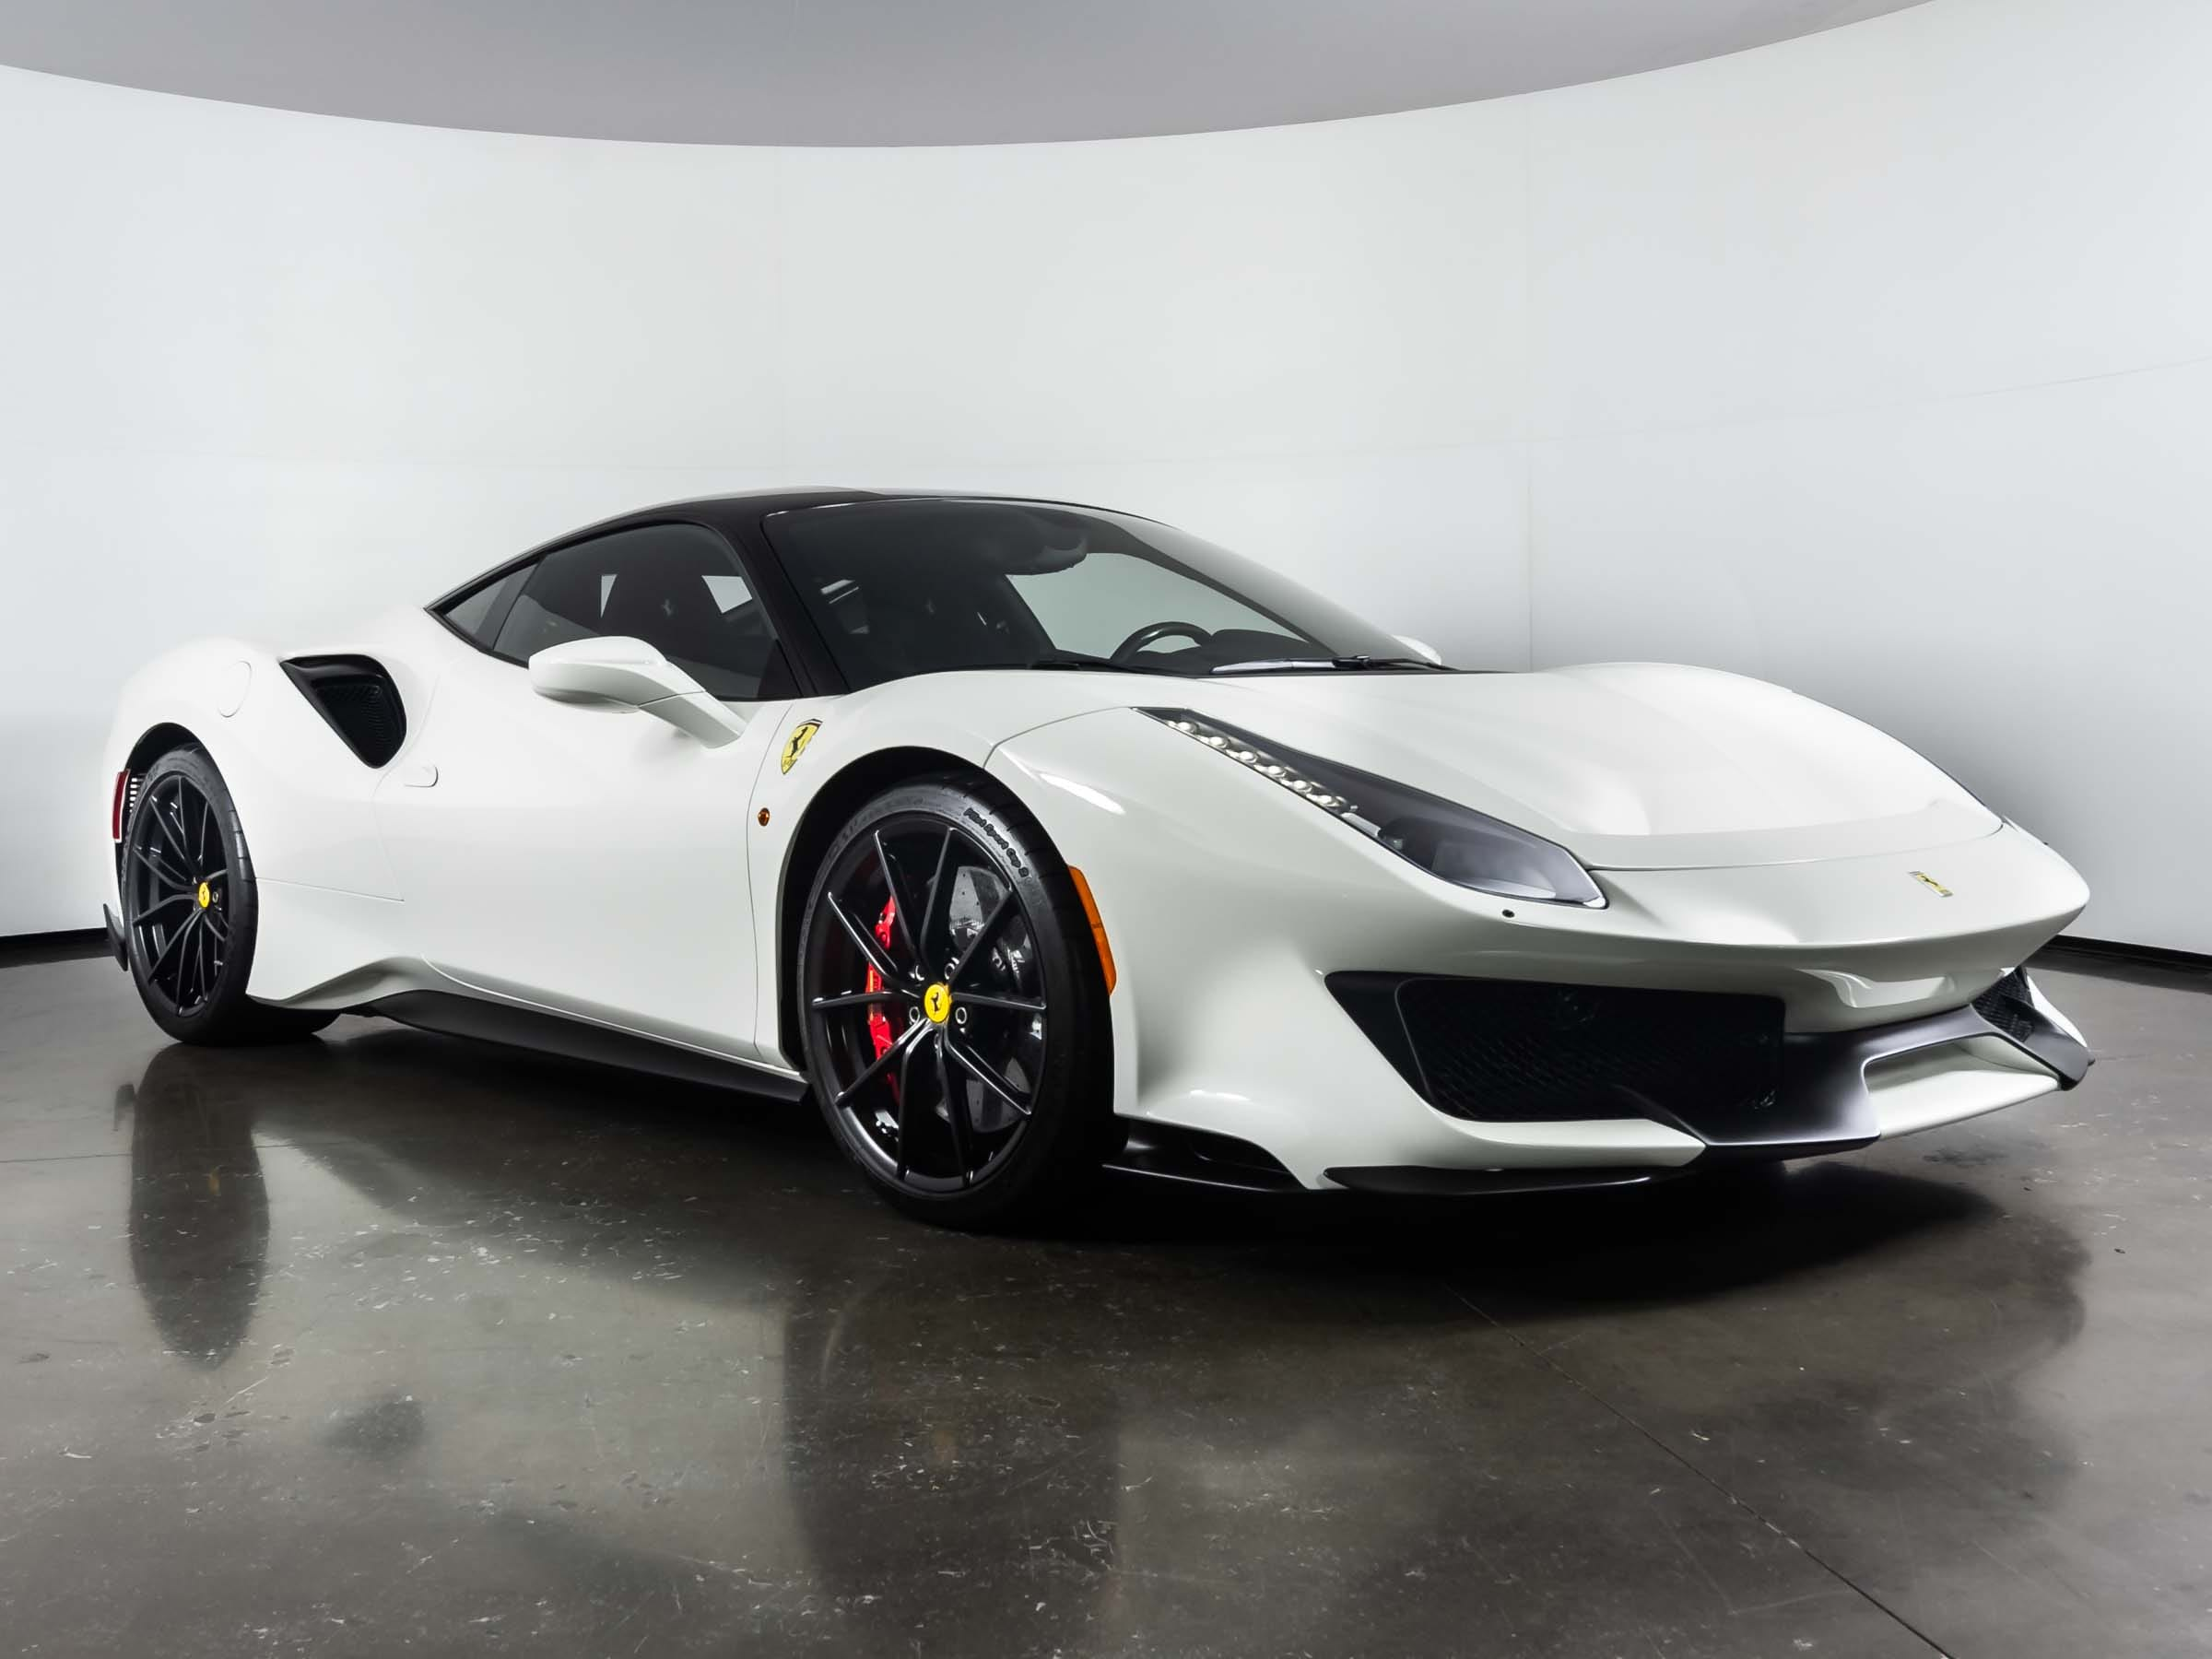 Used 2020 Ferrari 488 Pista For Sale Plano Tx Vin Zff90hla4l0251006